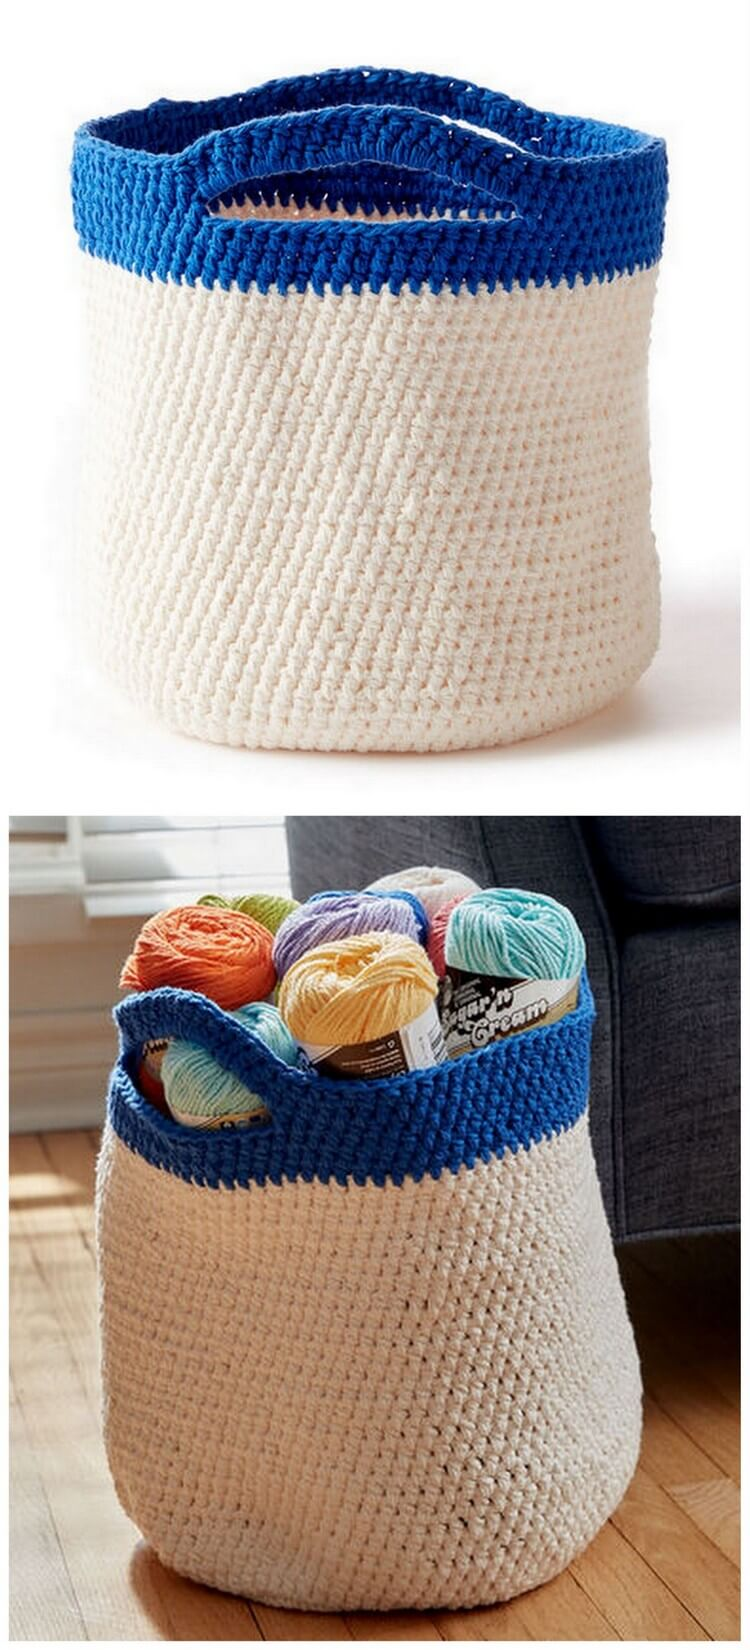 Crochet Basket Pattern (62)